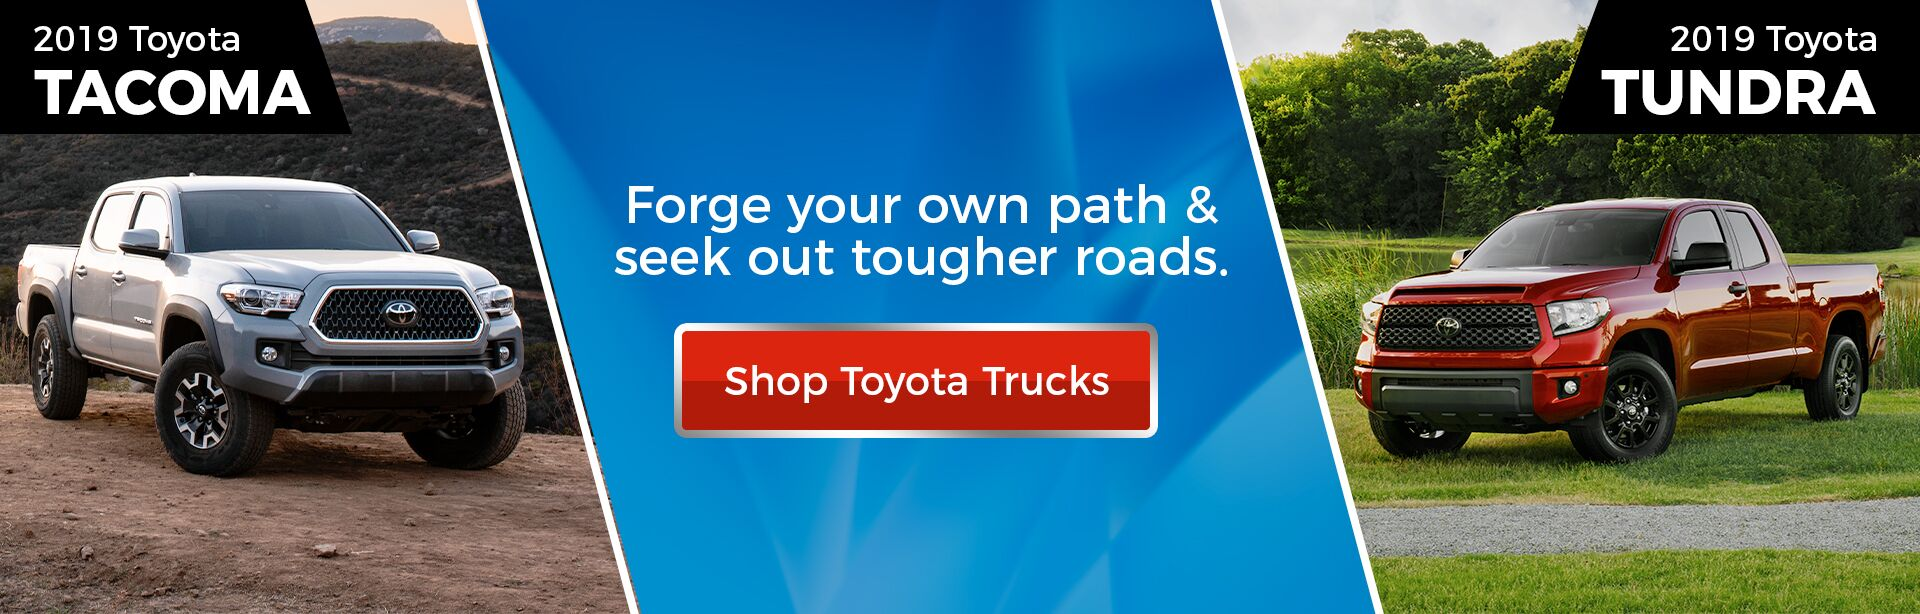 Evergreen Toyota Trucks